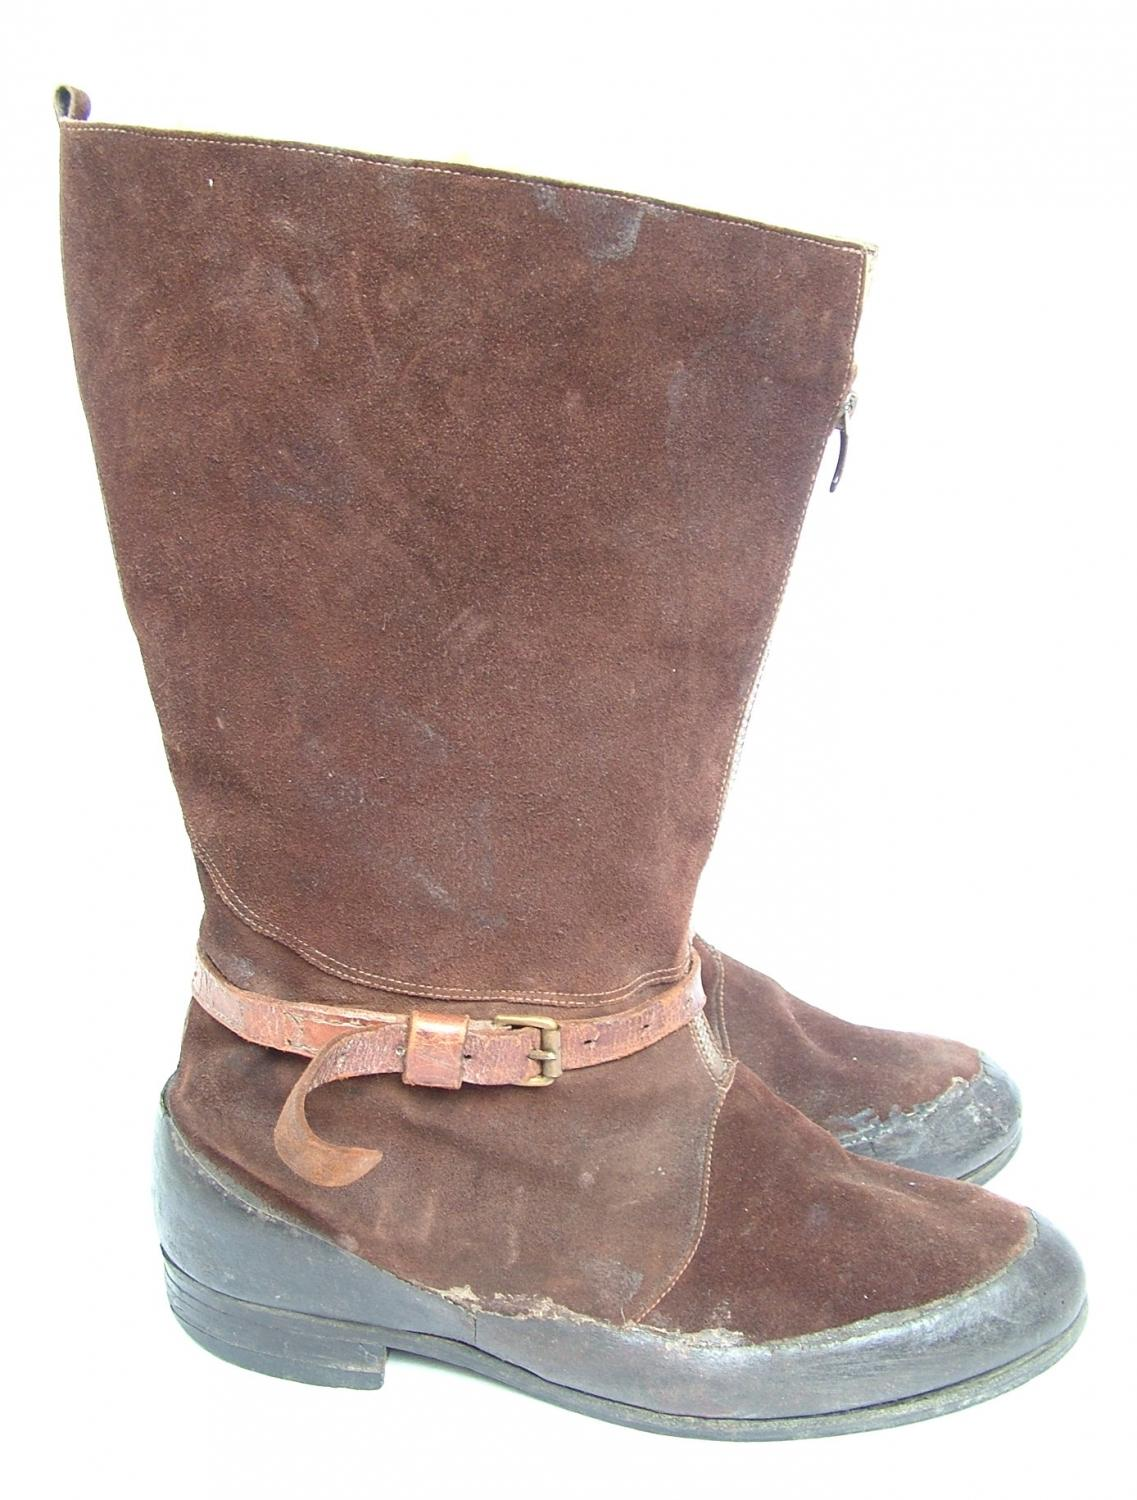 RAF 1941 Pattern Flying Boots